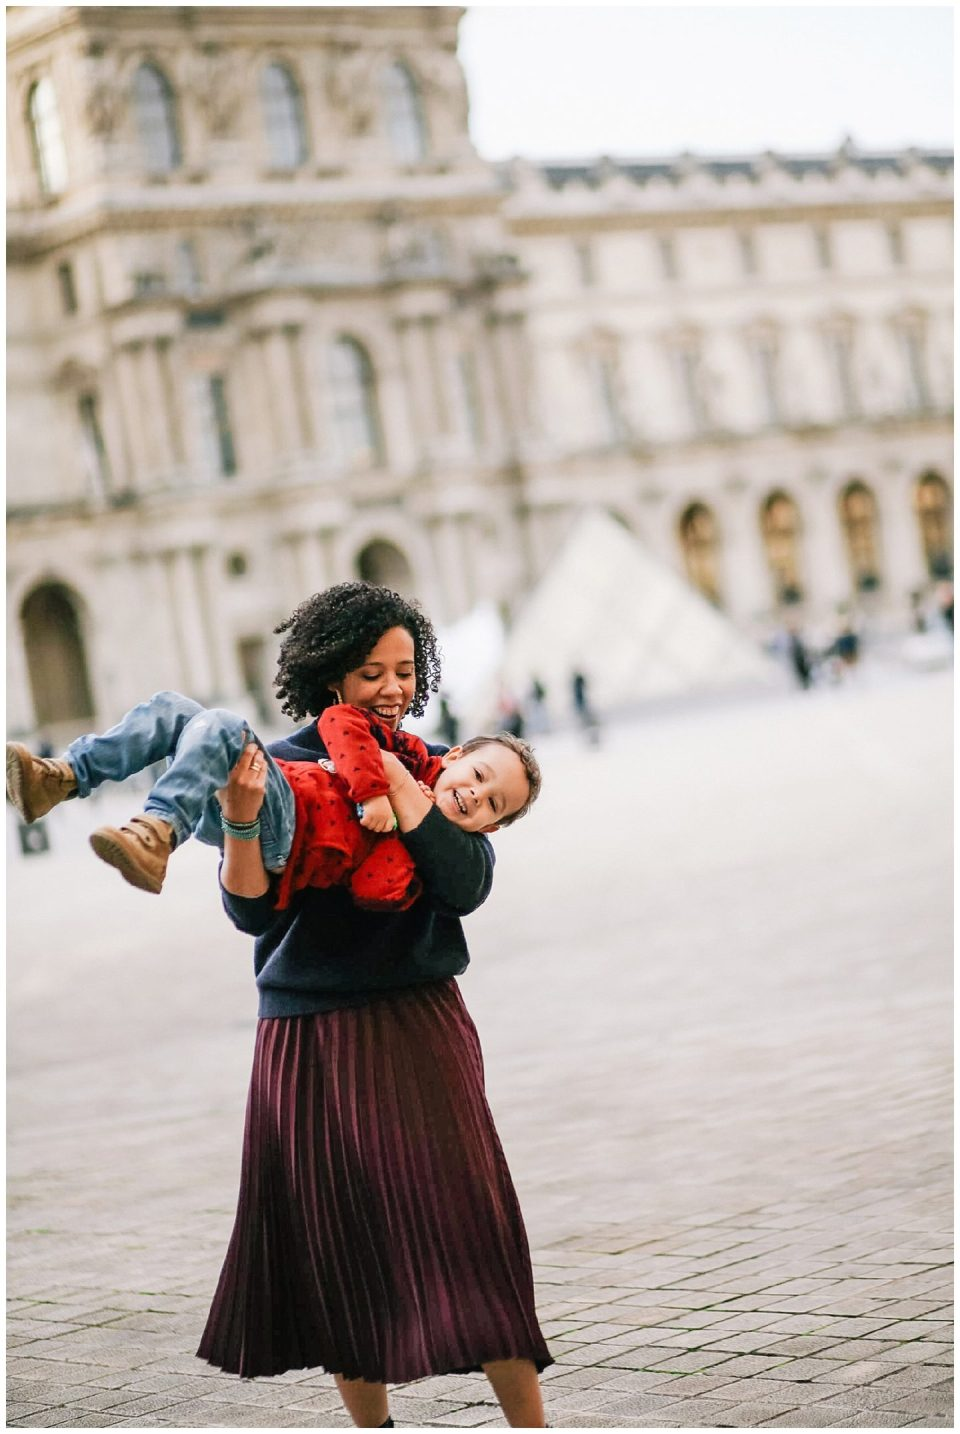 Paris family photographer photographs mother and son at Louvre